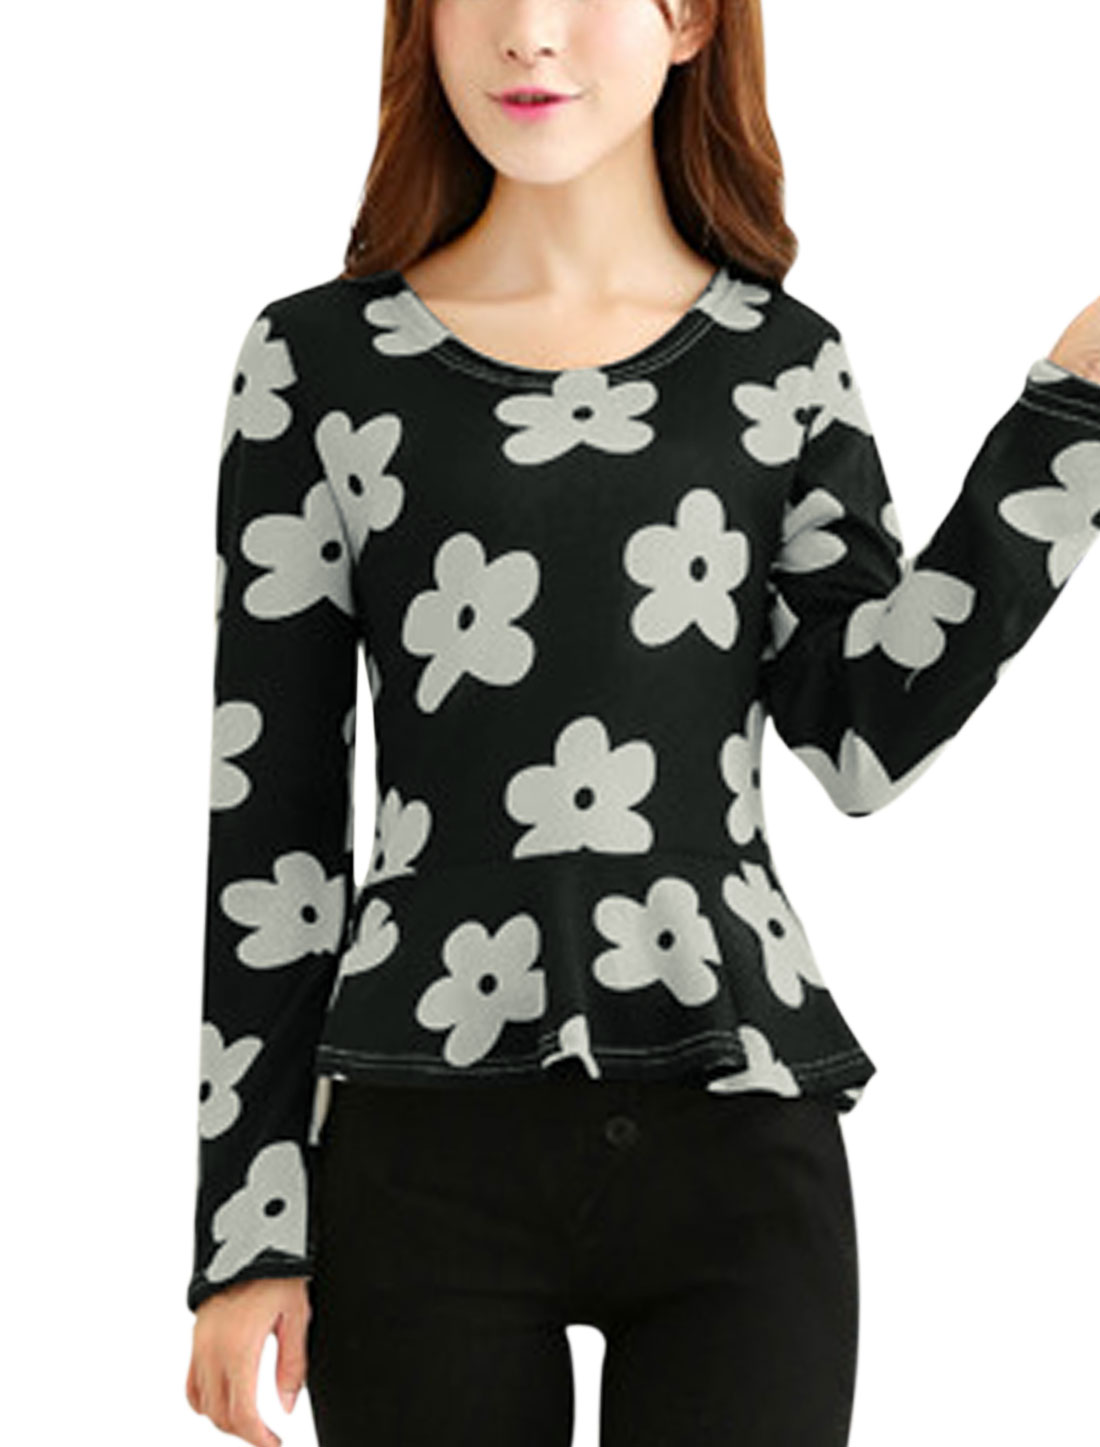 Ladies Round Neck Long Sleeve Floral Prints Chic Knit Peplum Top Black XS